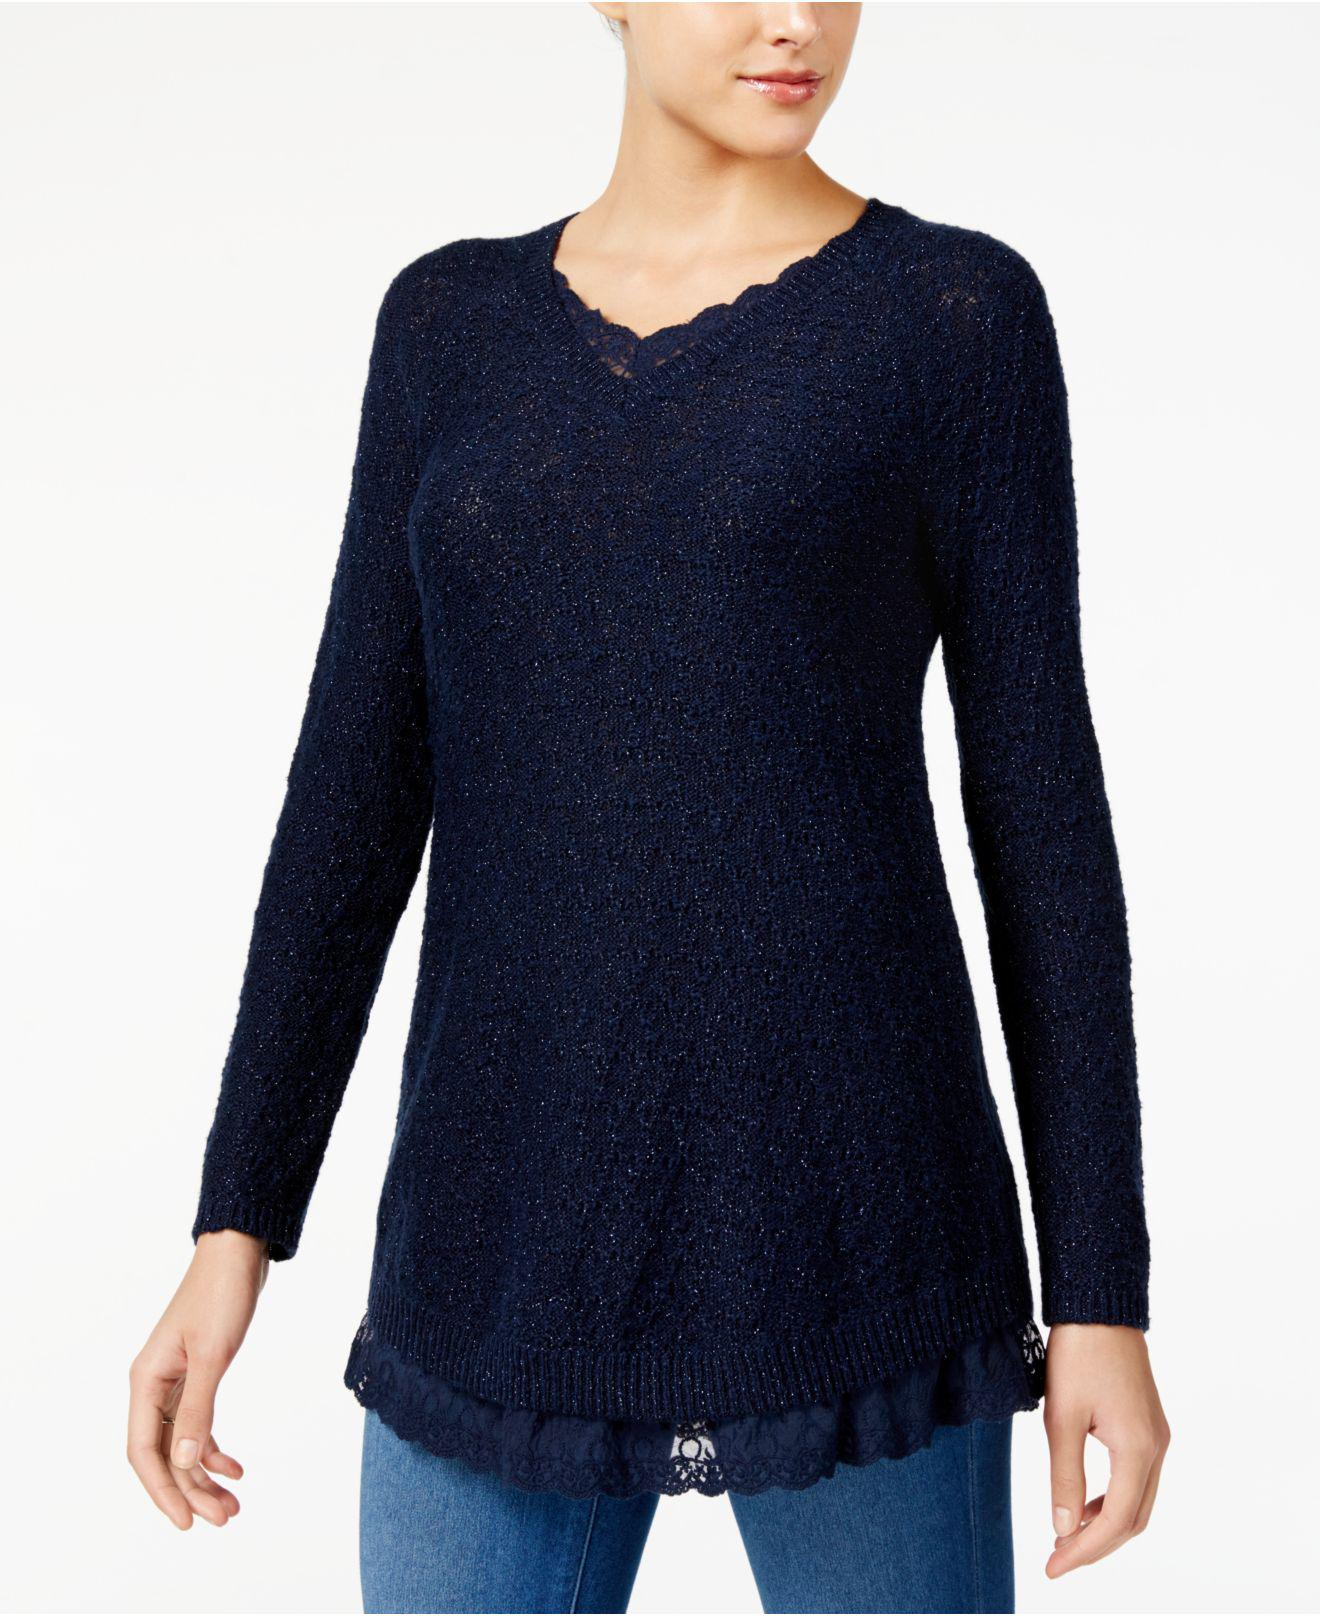 Style & co. Petite Lace-trim Tunic Sweater in Blue | Lyst